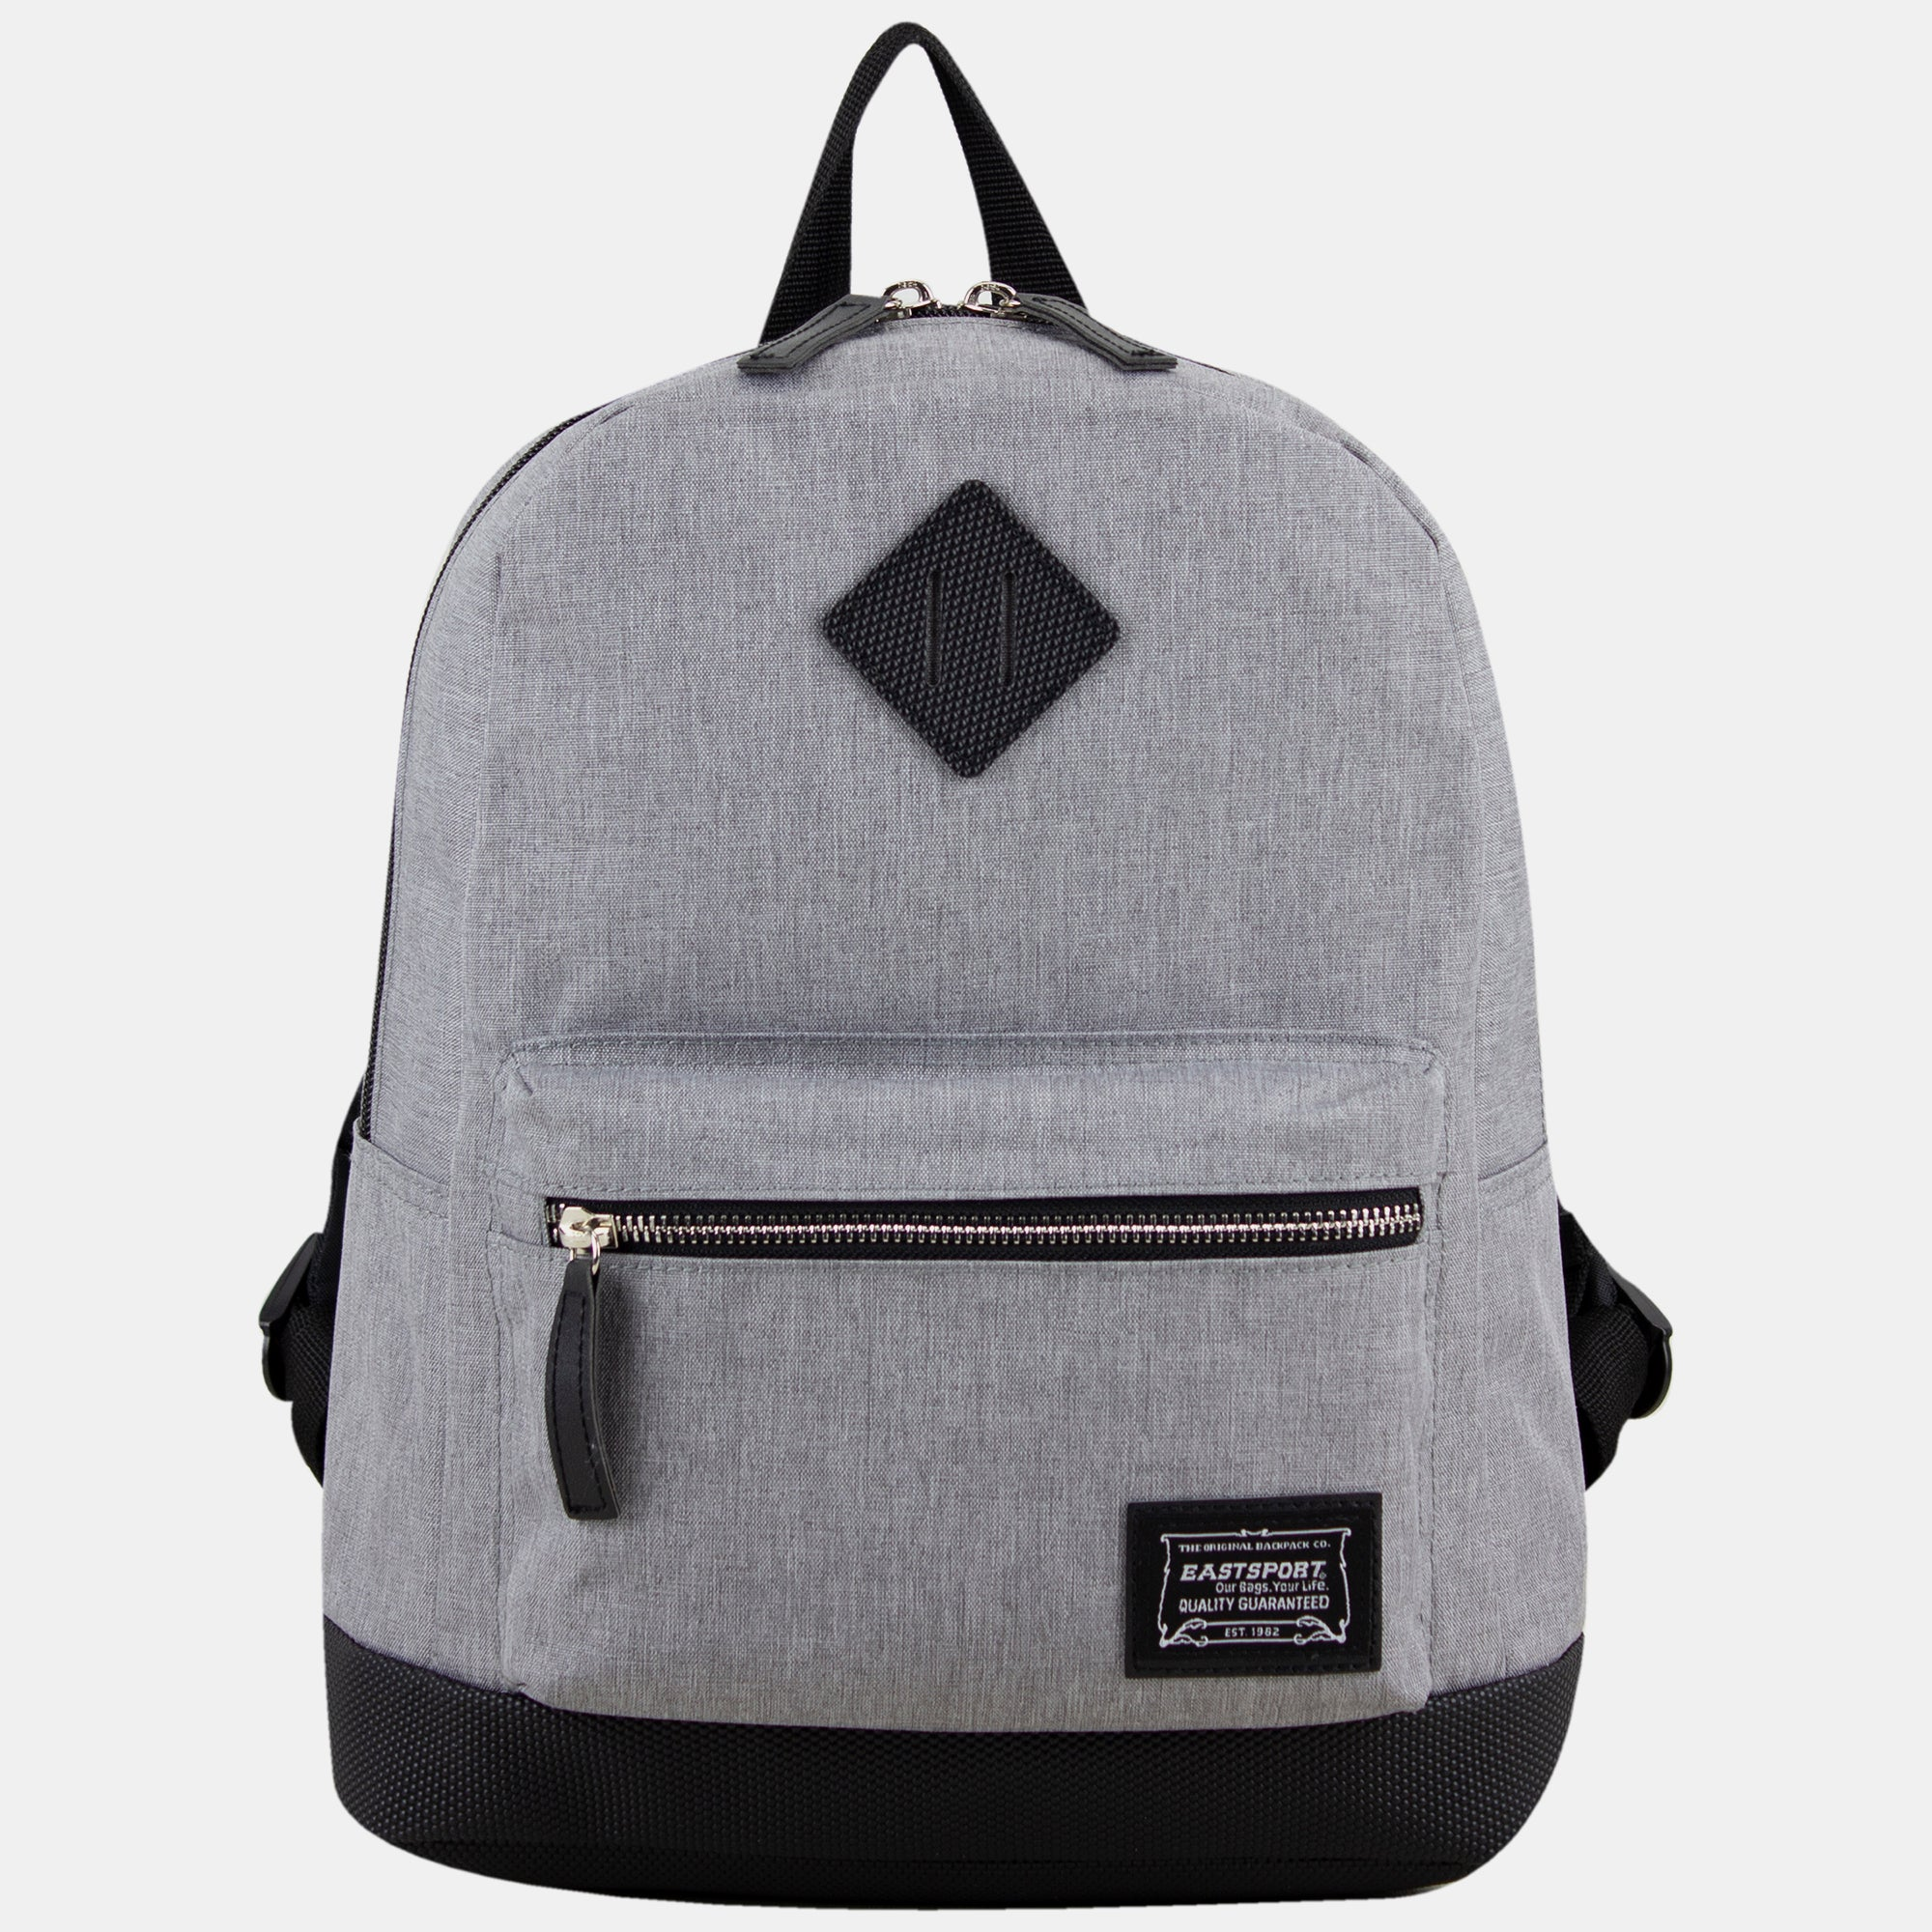 Eastsport Limited Mini Backpack